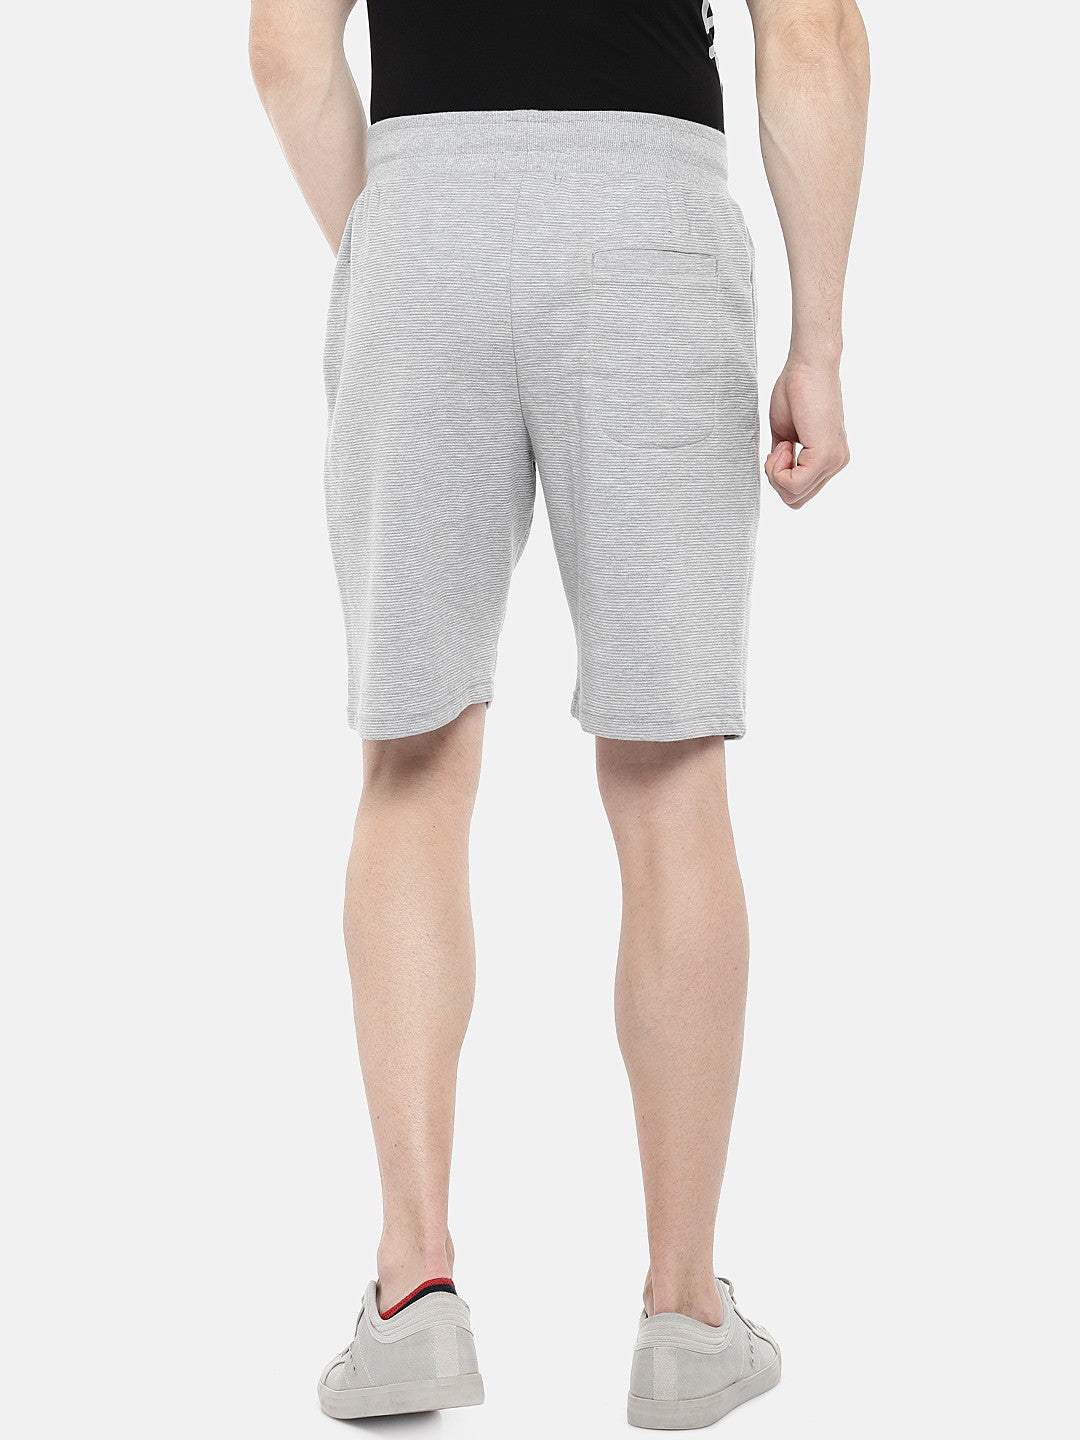 Grey Solid Regular Fit Regular Shorts-3